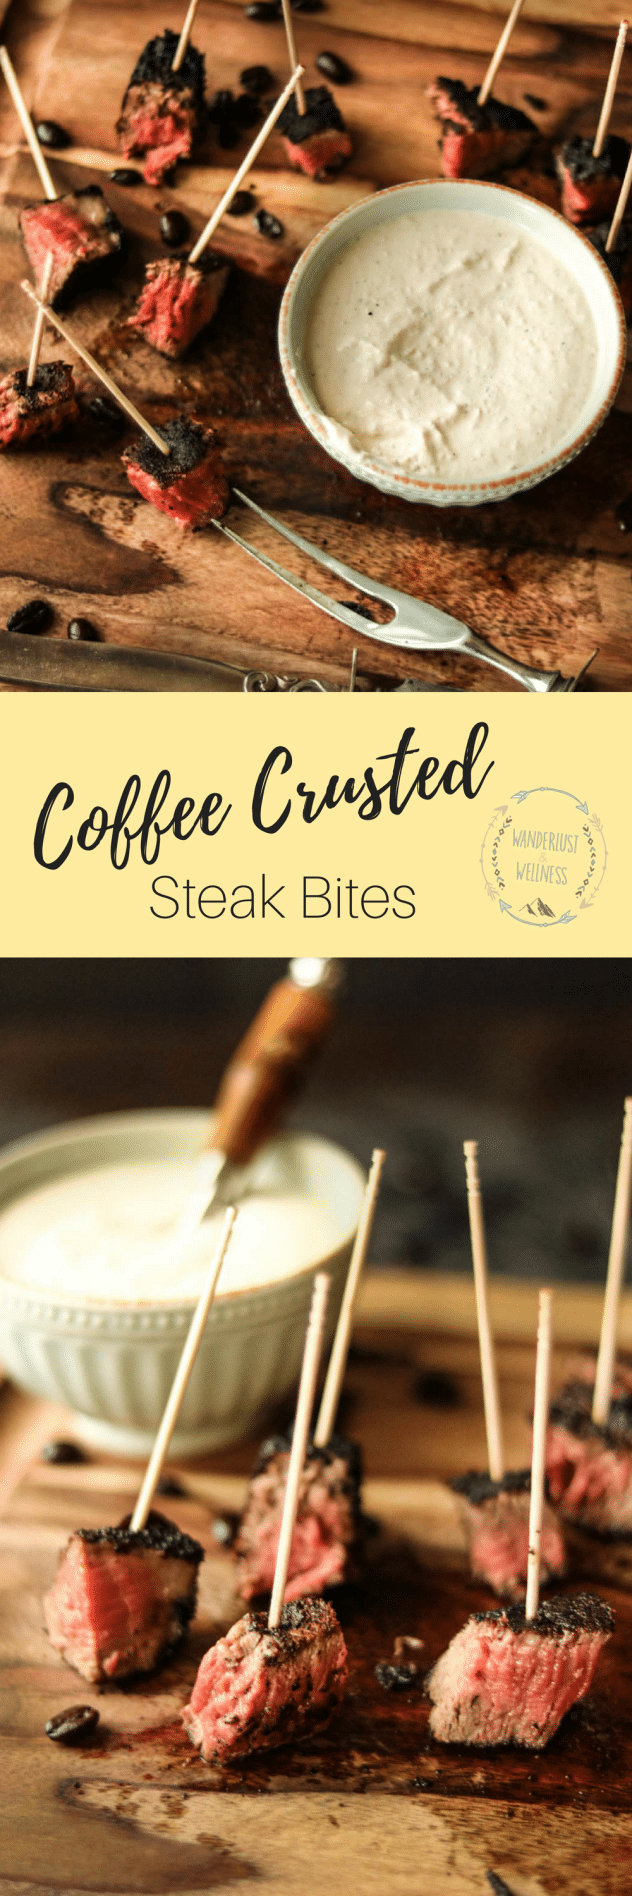 coffee crusted steak bites